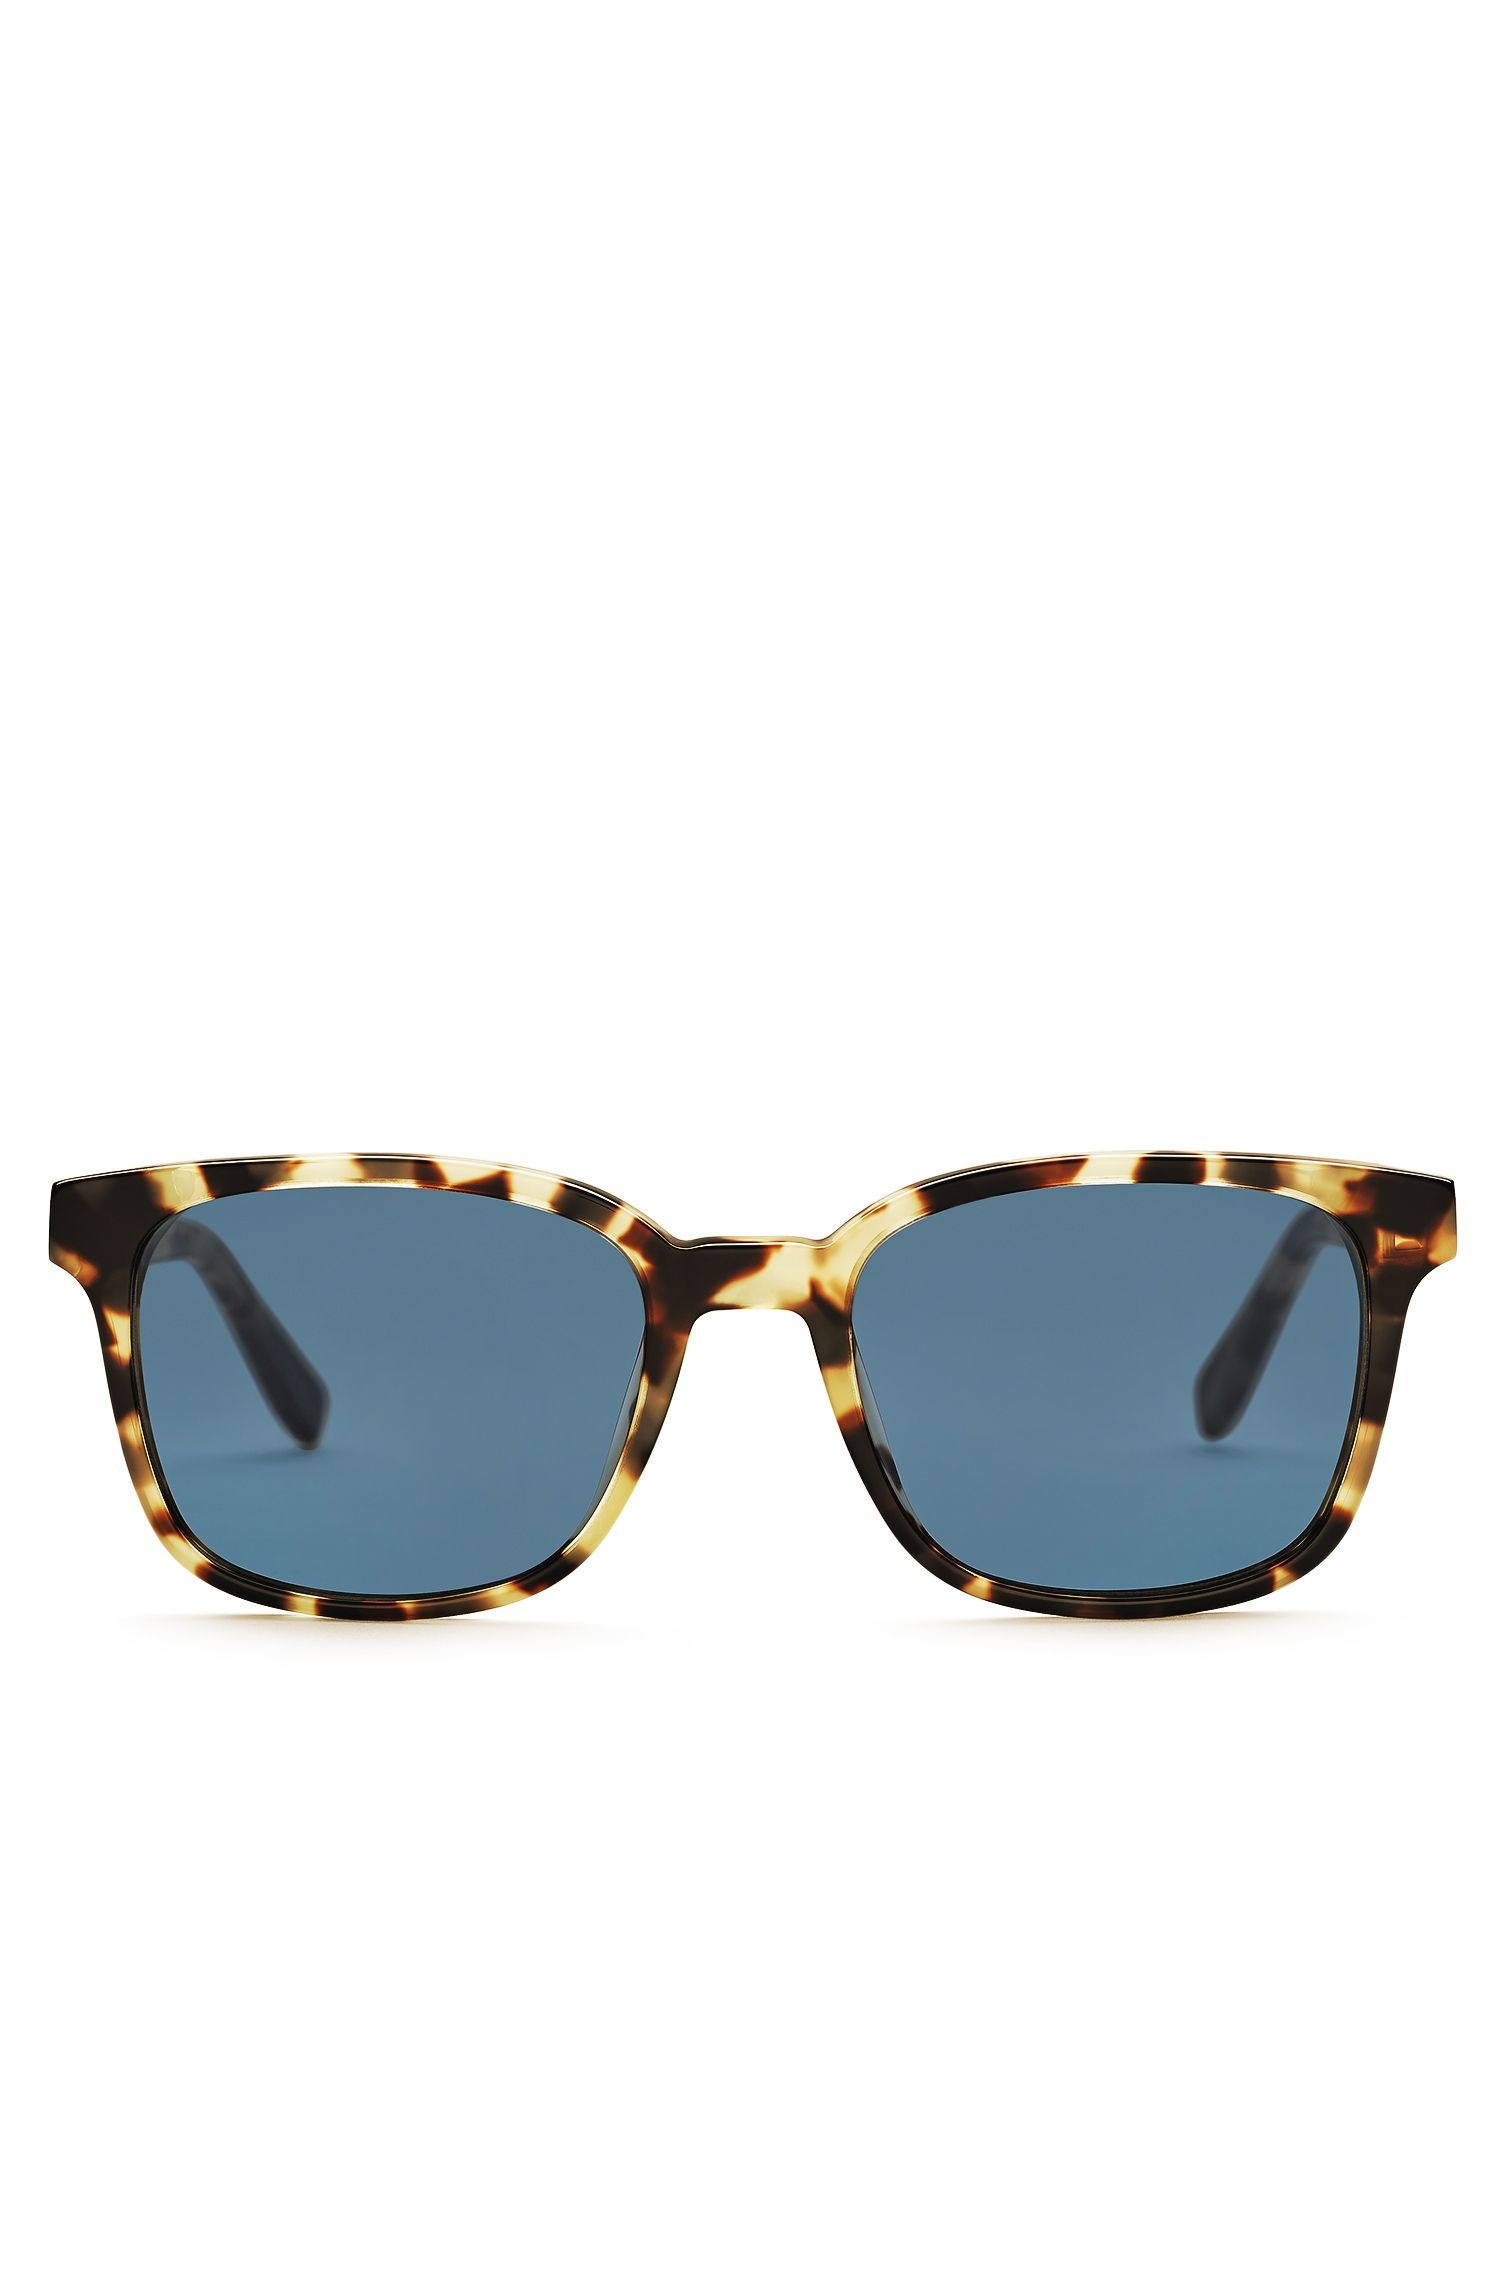 Blue Lens Square Sunglasses | BOSS 0802S